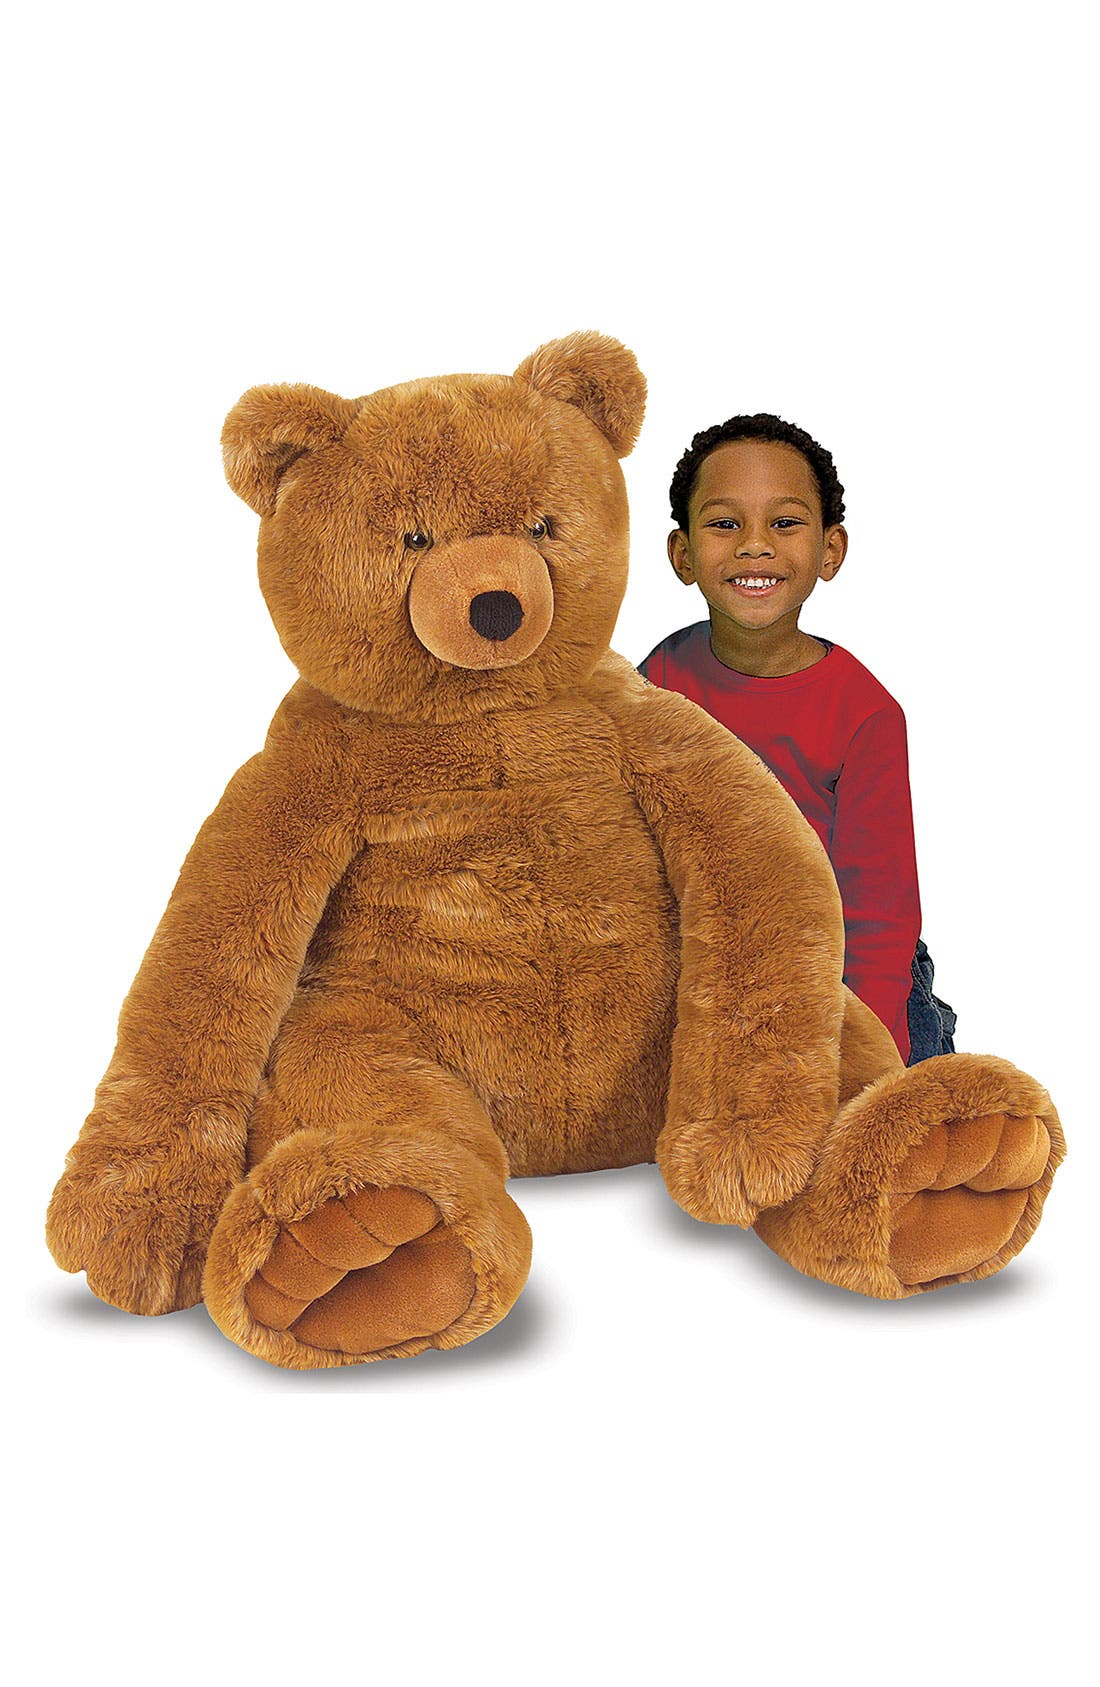 Alternate Image 1 Selected - Melissa & Doug Oversized Brown Teddy Bear